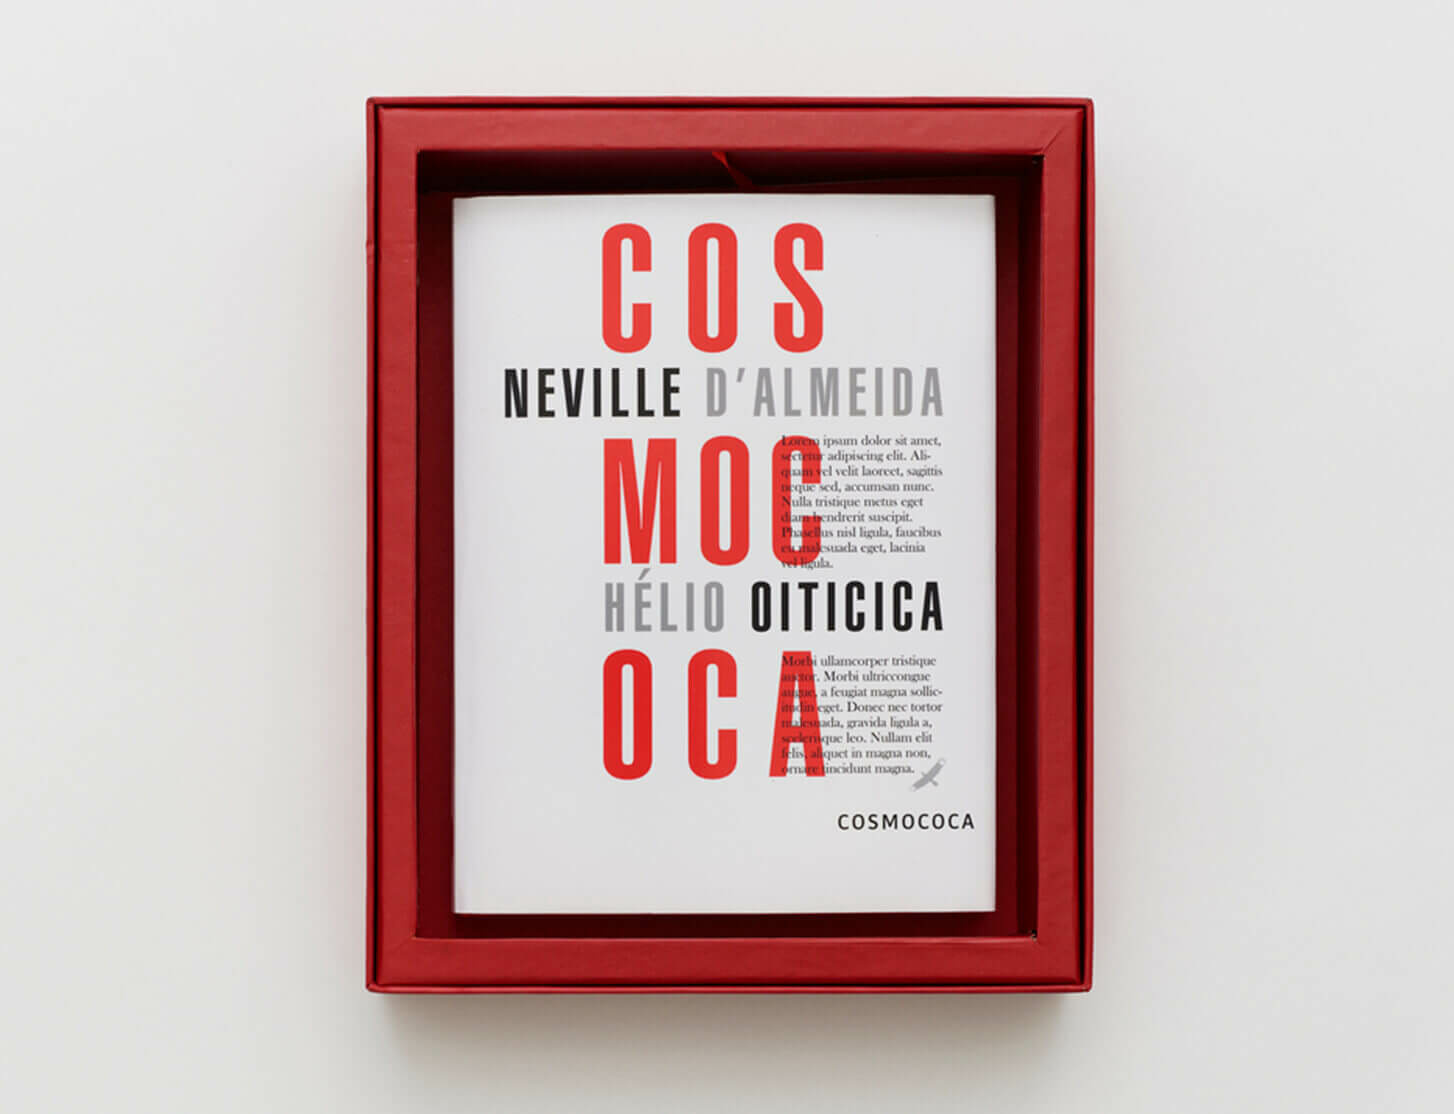 Limited edition version of Hélio Oiticica: Cosmococas artist photobox now available for pre-order